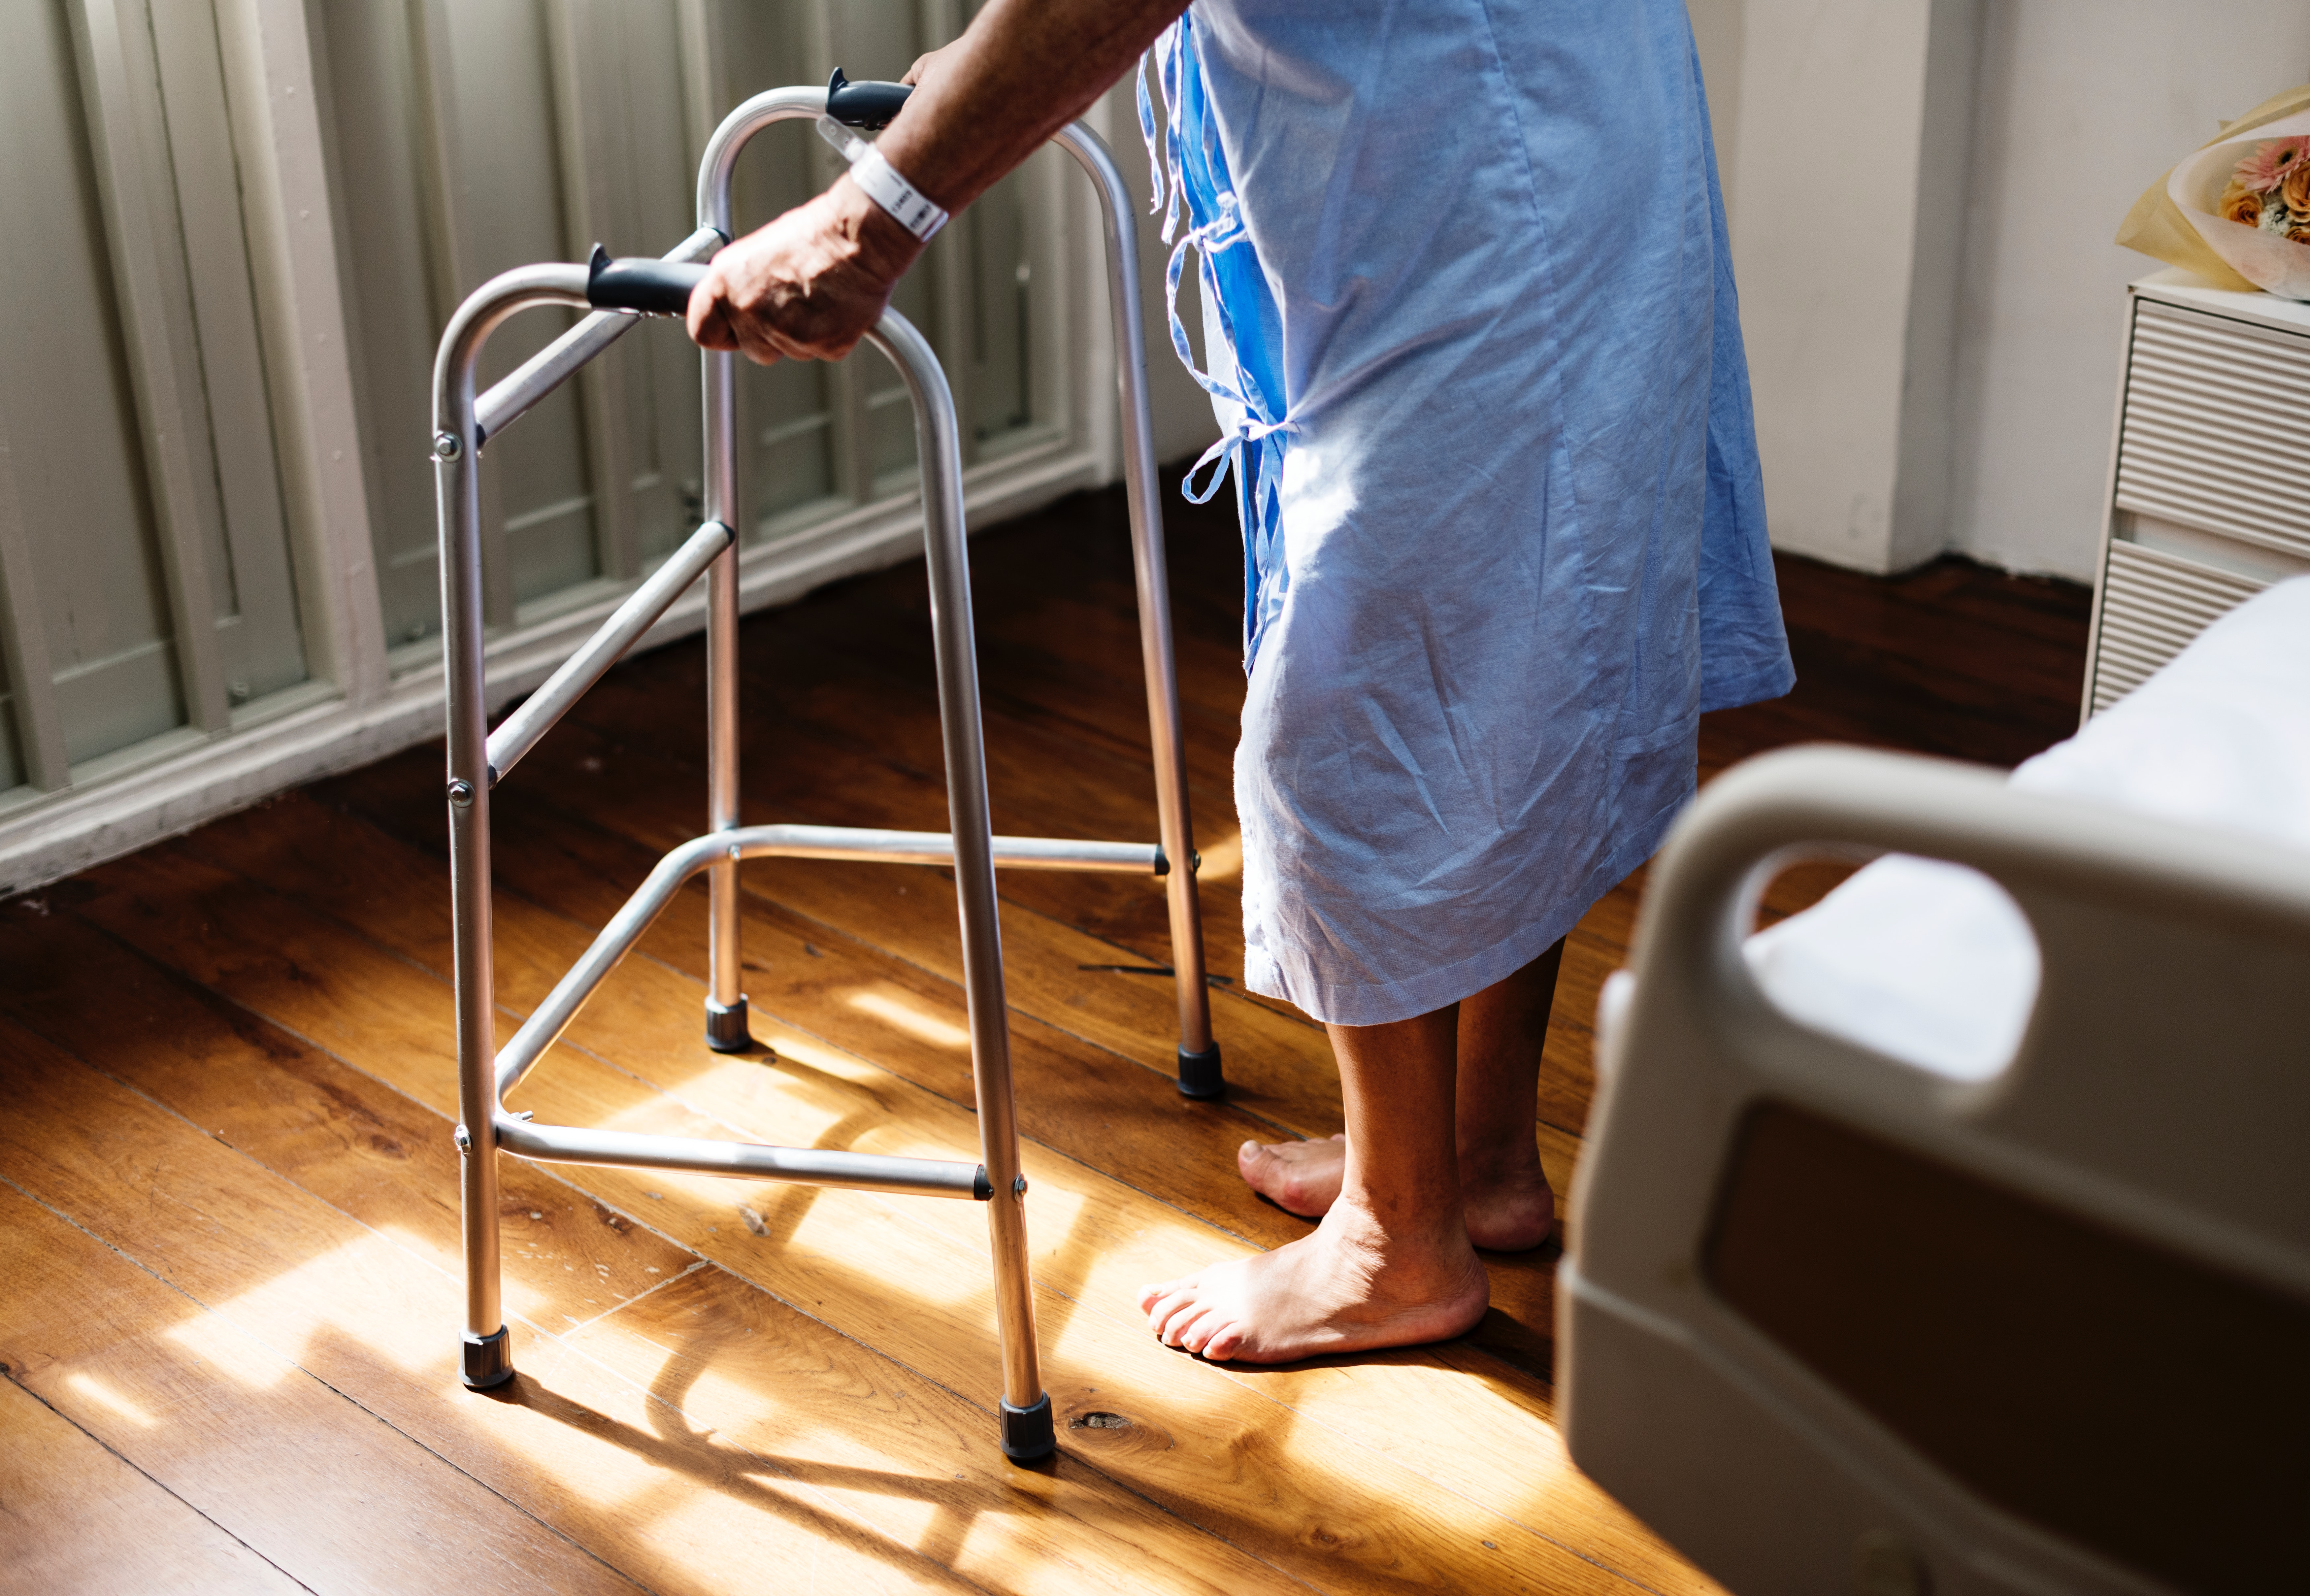 Free photo: Person in Hospital Gown Using Walking Frame Beside ...